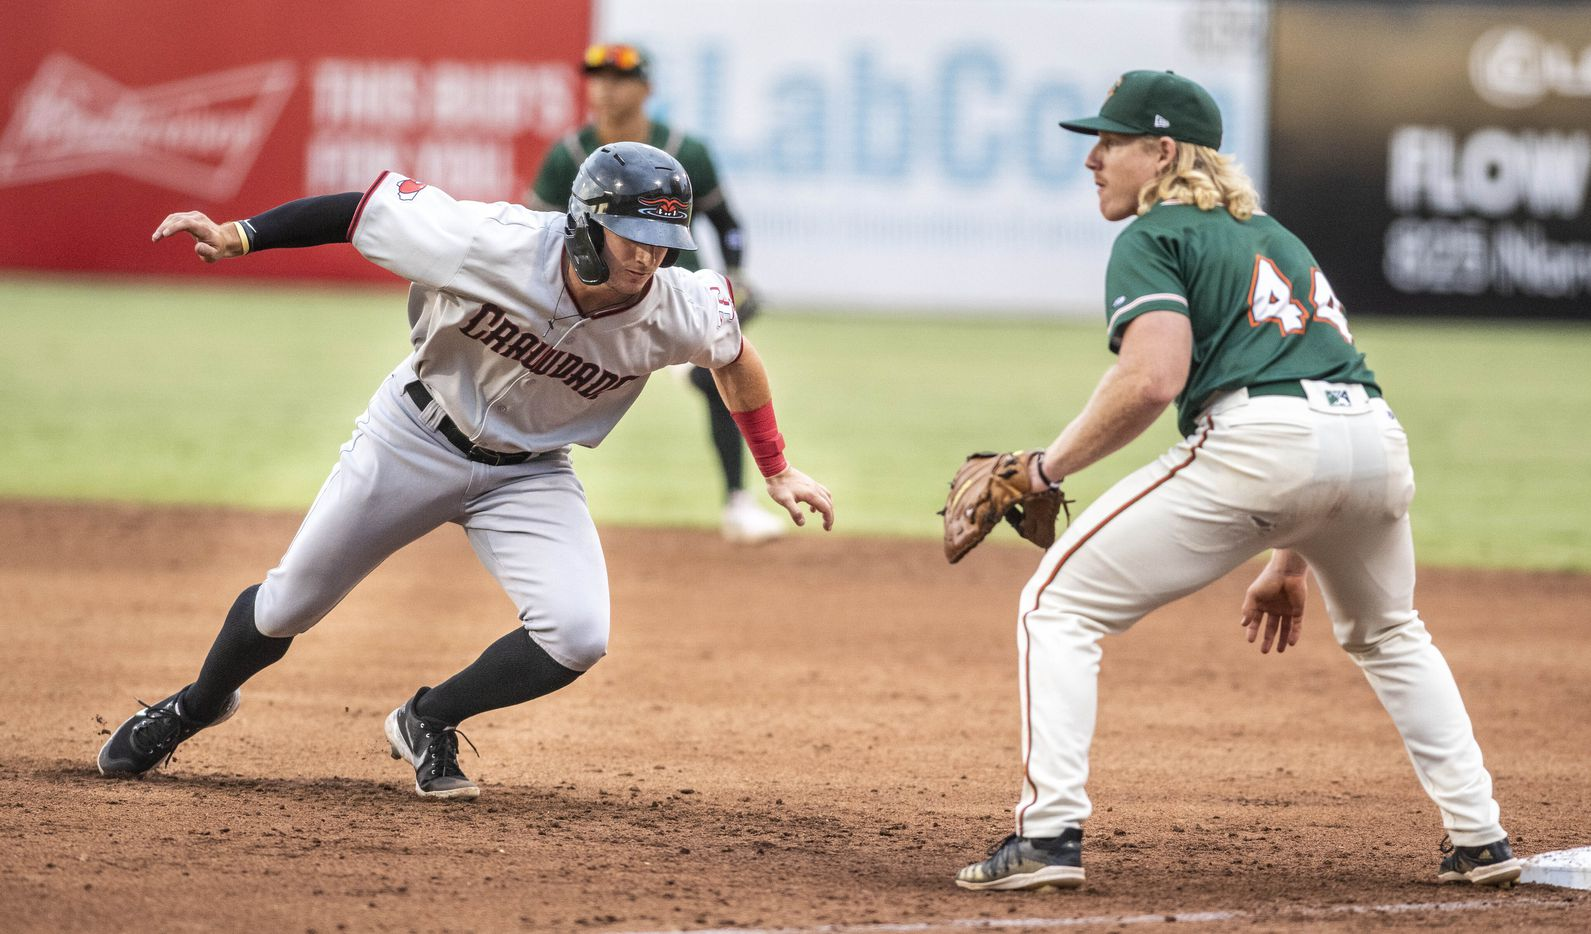 Hickory Crawdad's Trevor Hauver (33) gets back to first base during the game with the Greensboro Grasshopper's at First National Bank Field on Friday, August 6, 2021 in Greensboro, N.C. (Woody Marshall/Special Contributor)